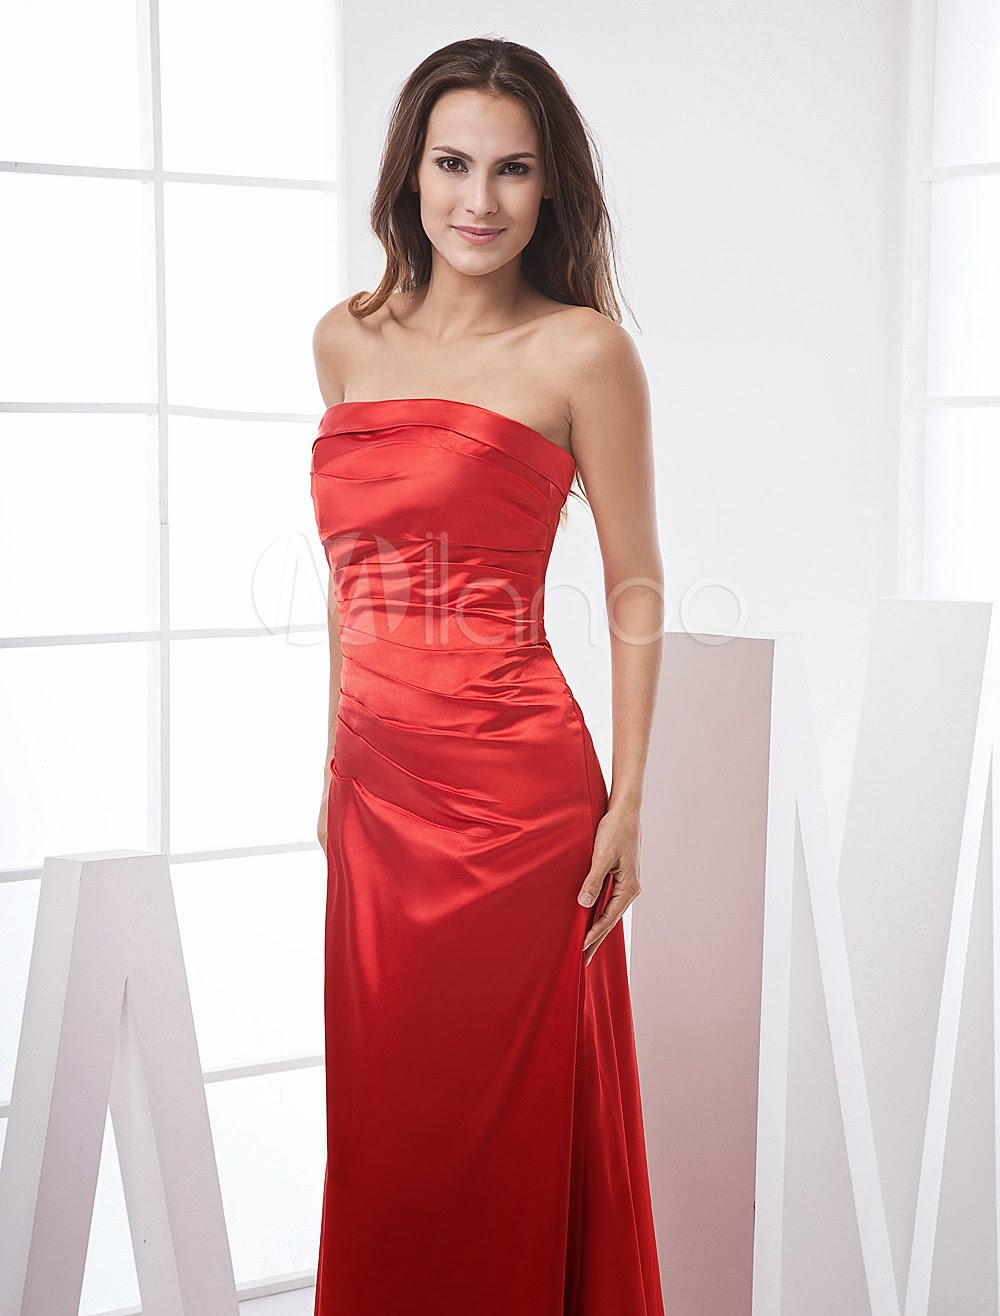 China Wholesale Dresses - Red Strapless Satin Prom Dress